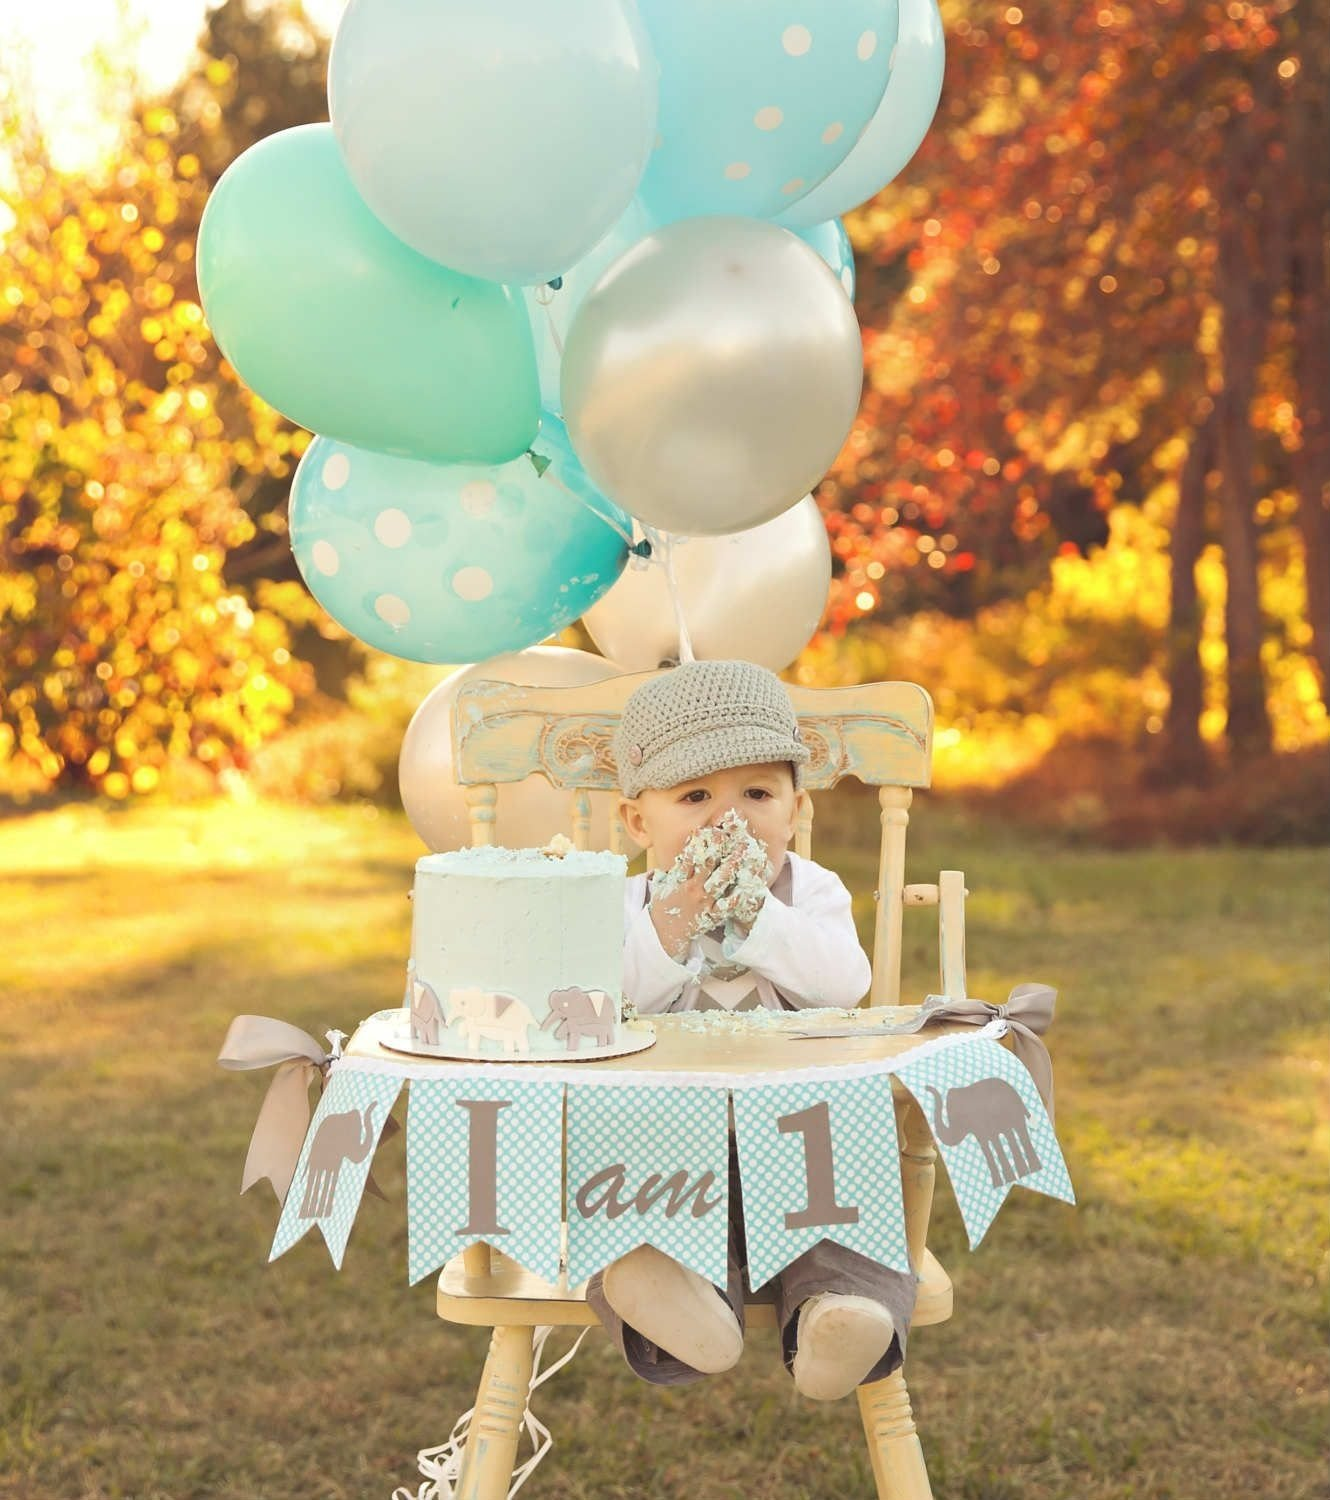 10 Famous One Year Birthday Party Ideas 10 1st birthday party ideas for boys part 2 birthday decorations 4